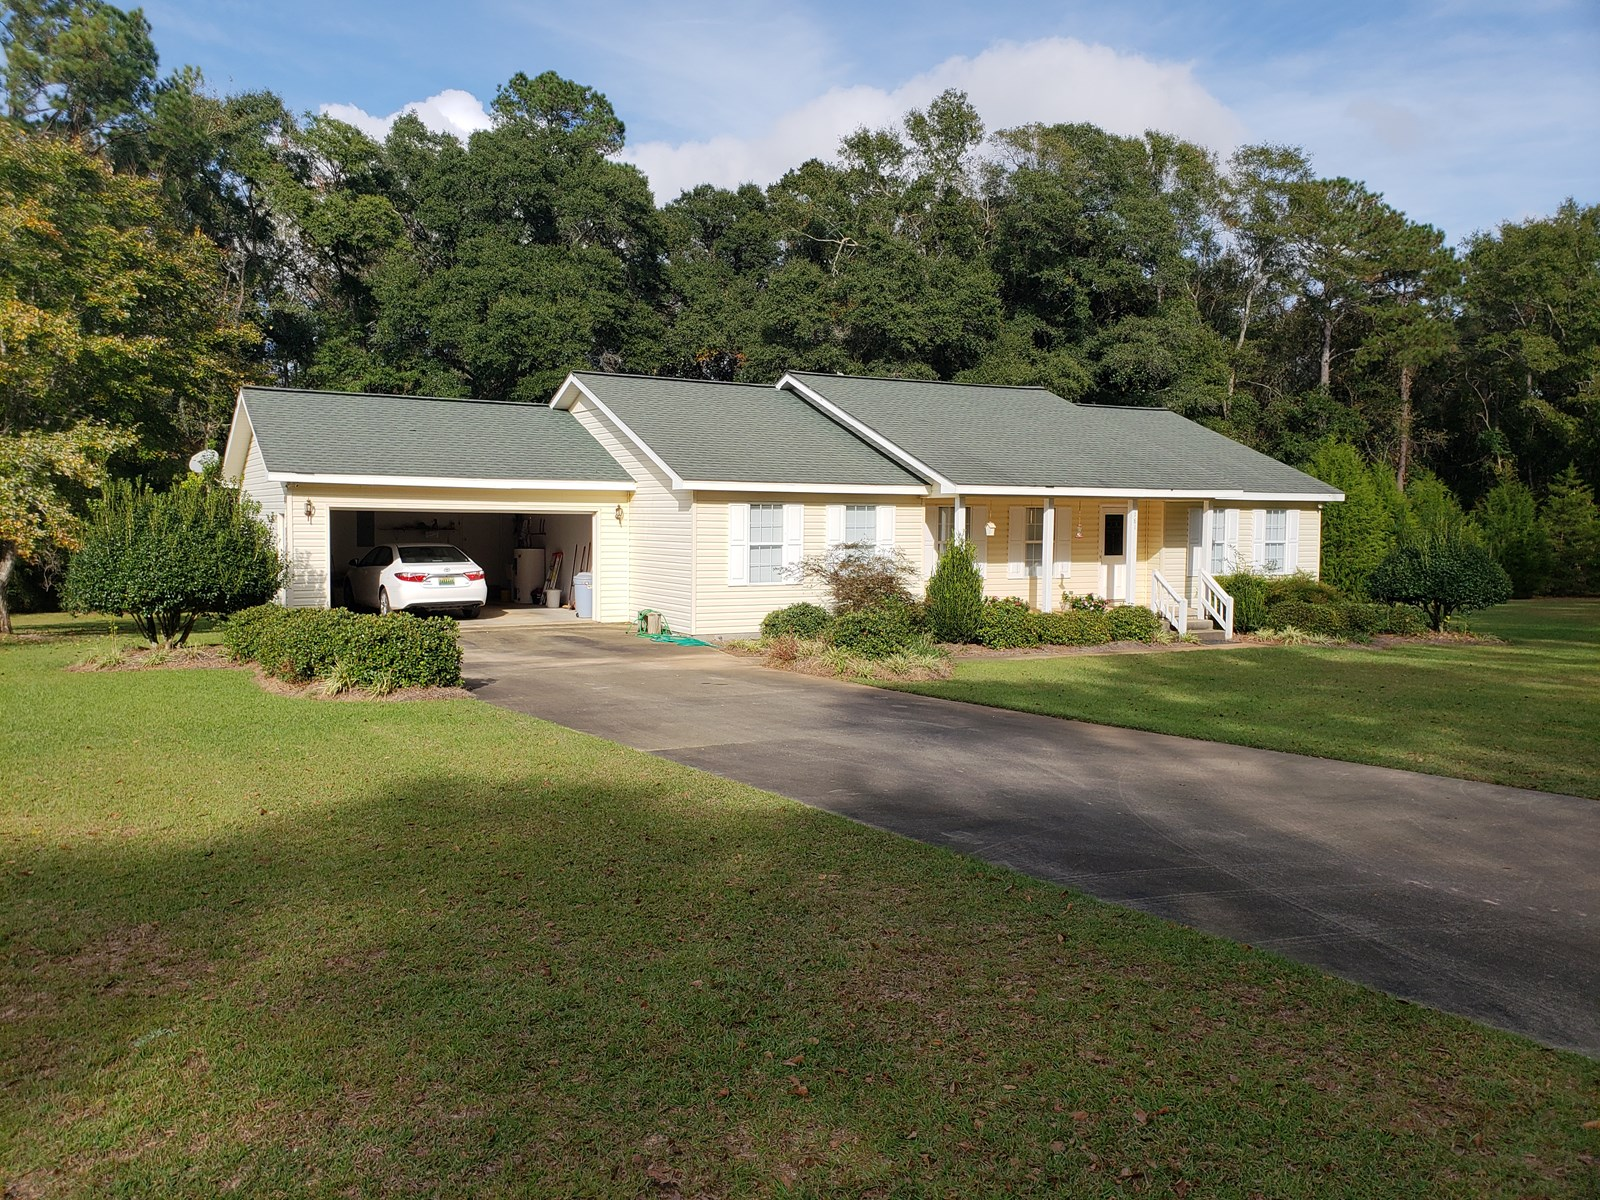 HOME ON 3.41 ACRES ON CREEK FOR SALE HARTFORD, ALABAMA